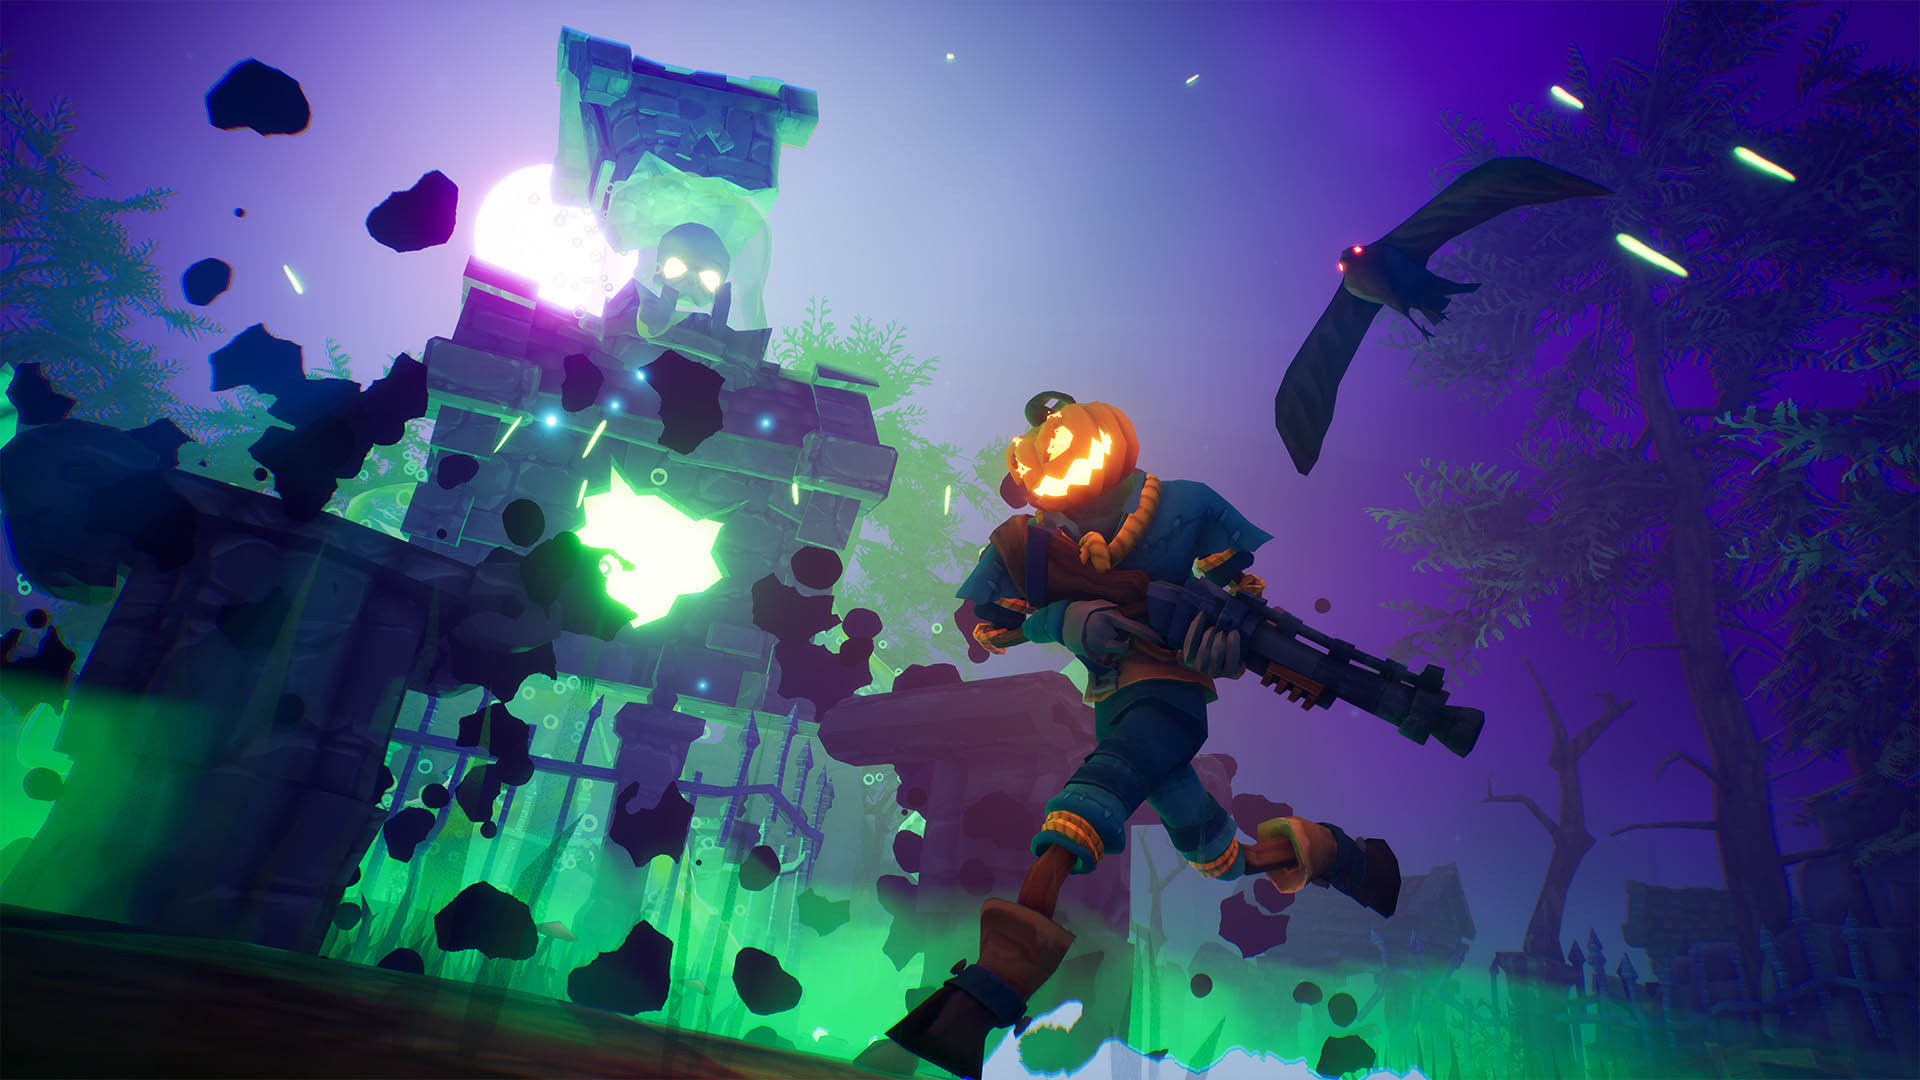 Pumpkin Jack and Ghostrunner will launch with ray tracing and Nvidia DLSS support